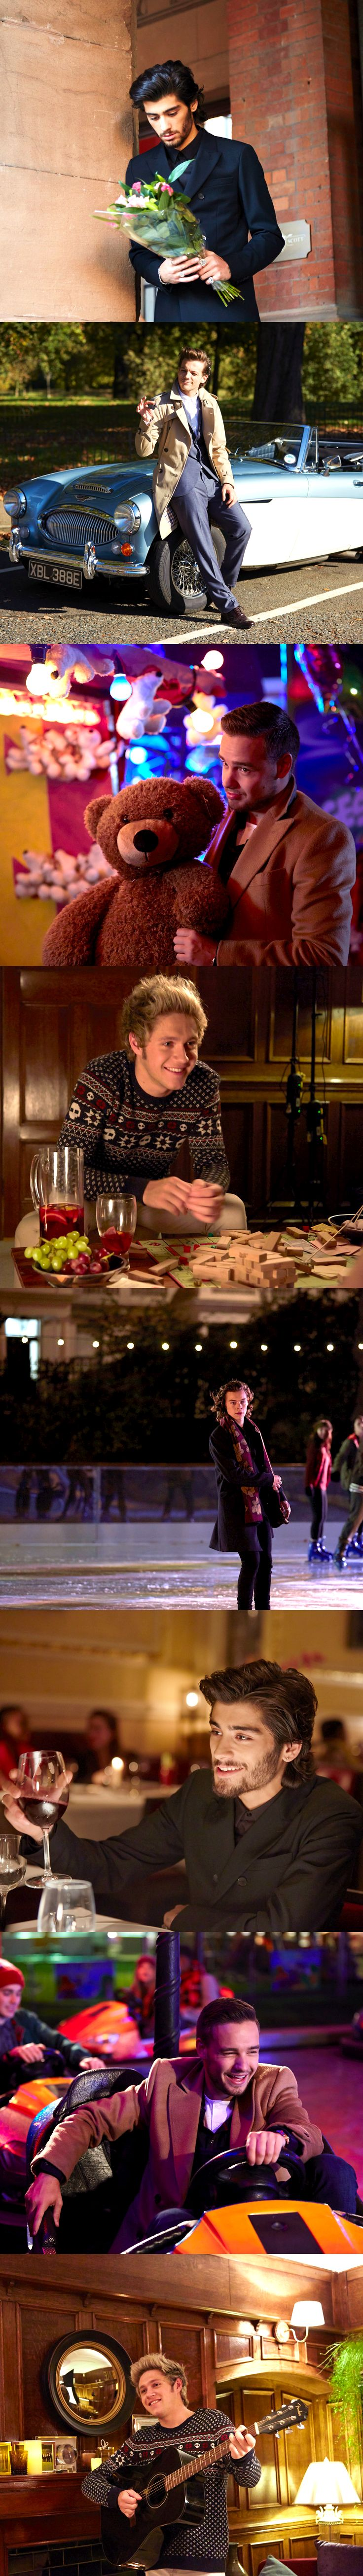 One Direction Night Changes collage. Niall Horan / Liam Payne / Harry Styles / Louis Tomlinson / Zayn Malik / One Direction